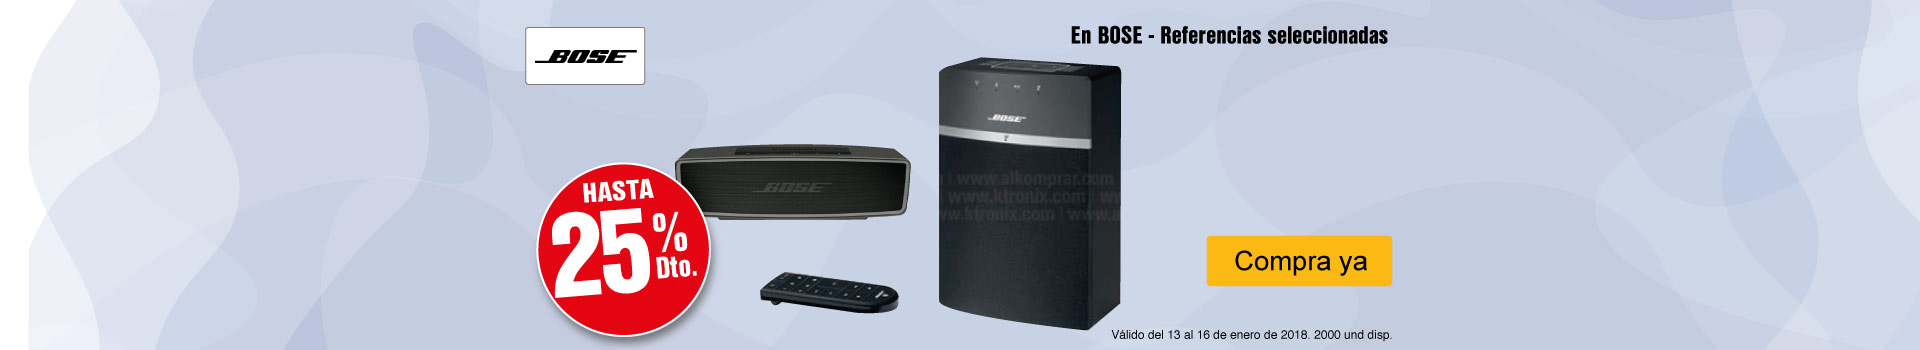 CAT-AK-1-AUDIO-HASTA-25%-EN-BOSE---REFERENCIAS-SELECCIONADAS-CAT-13-16-ENERO